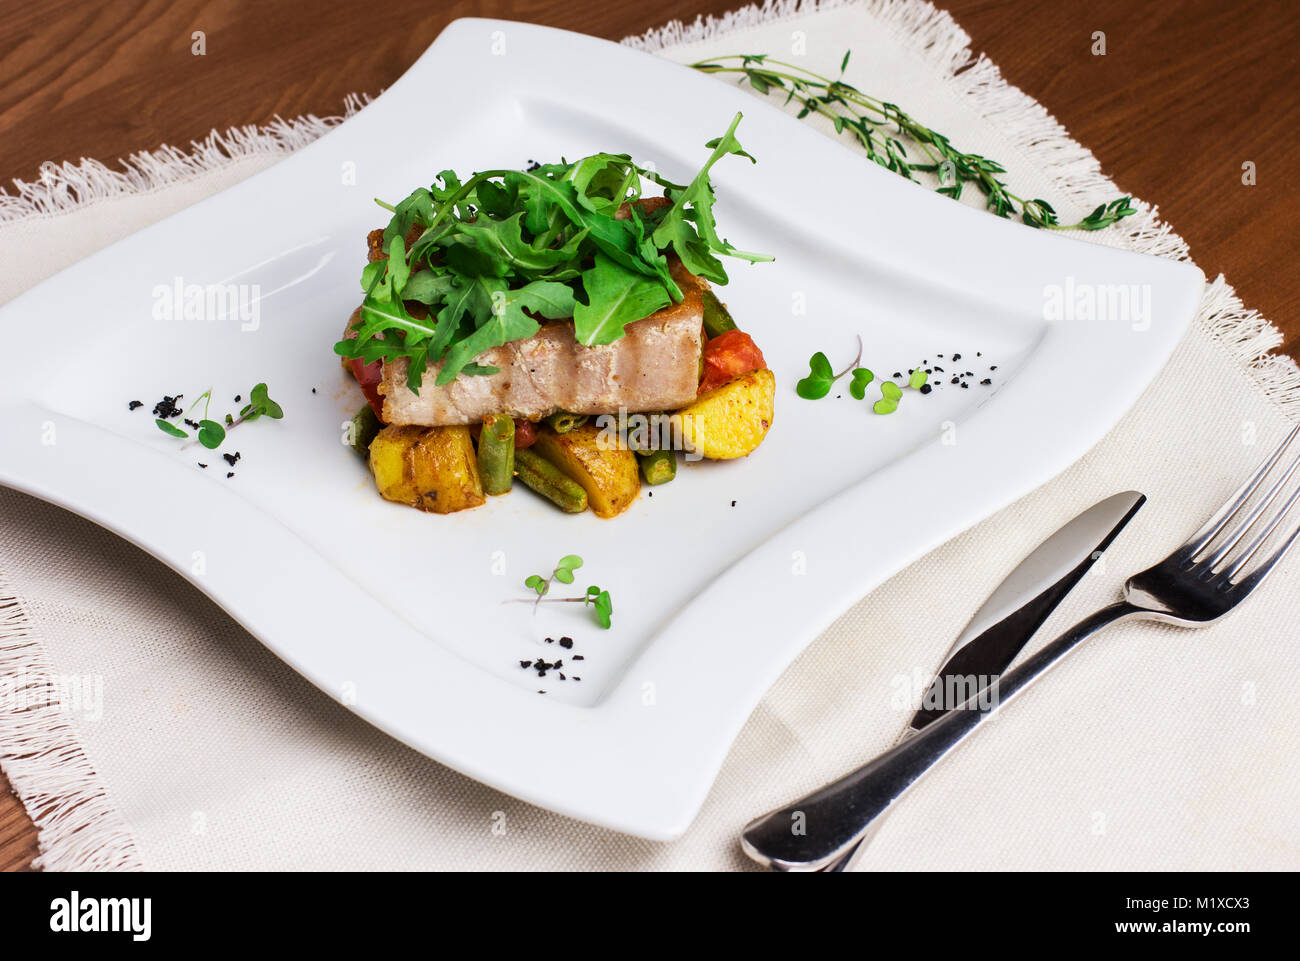 Baked fish fillets with potatoes and green beans on a square plate - Stock Image